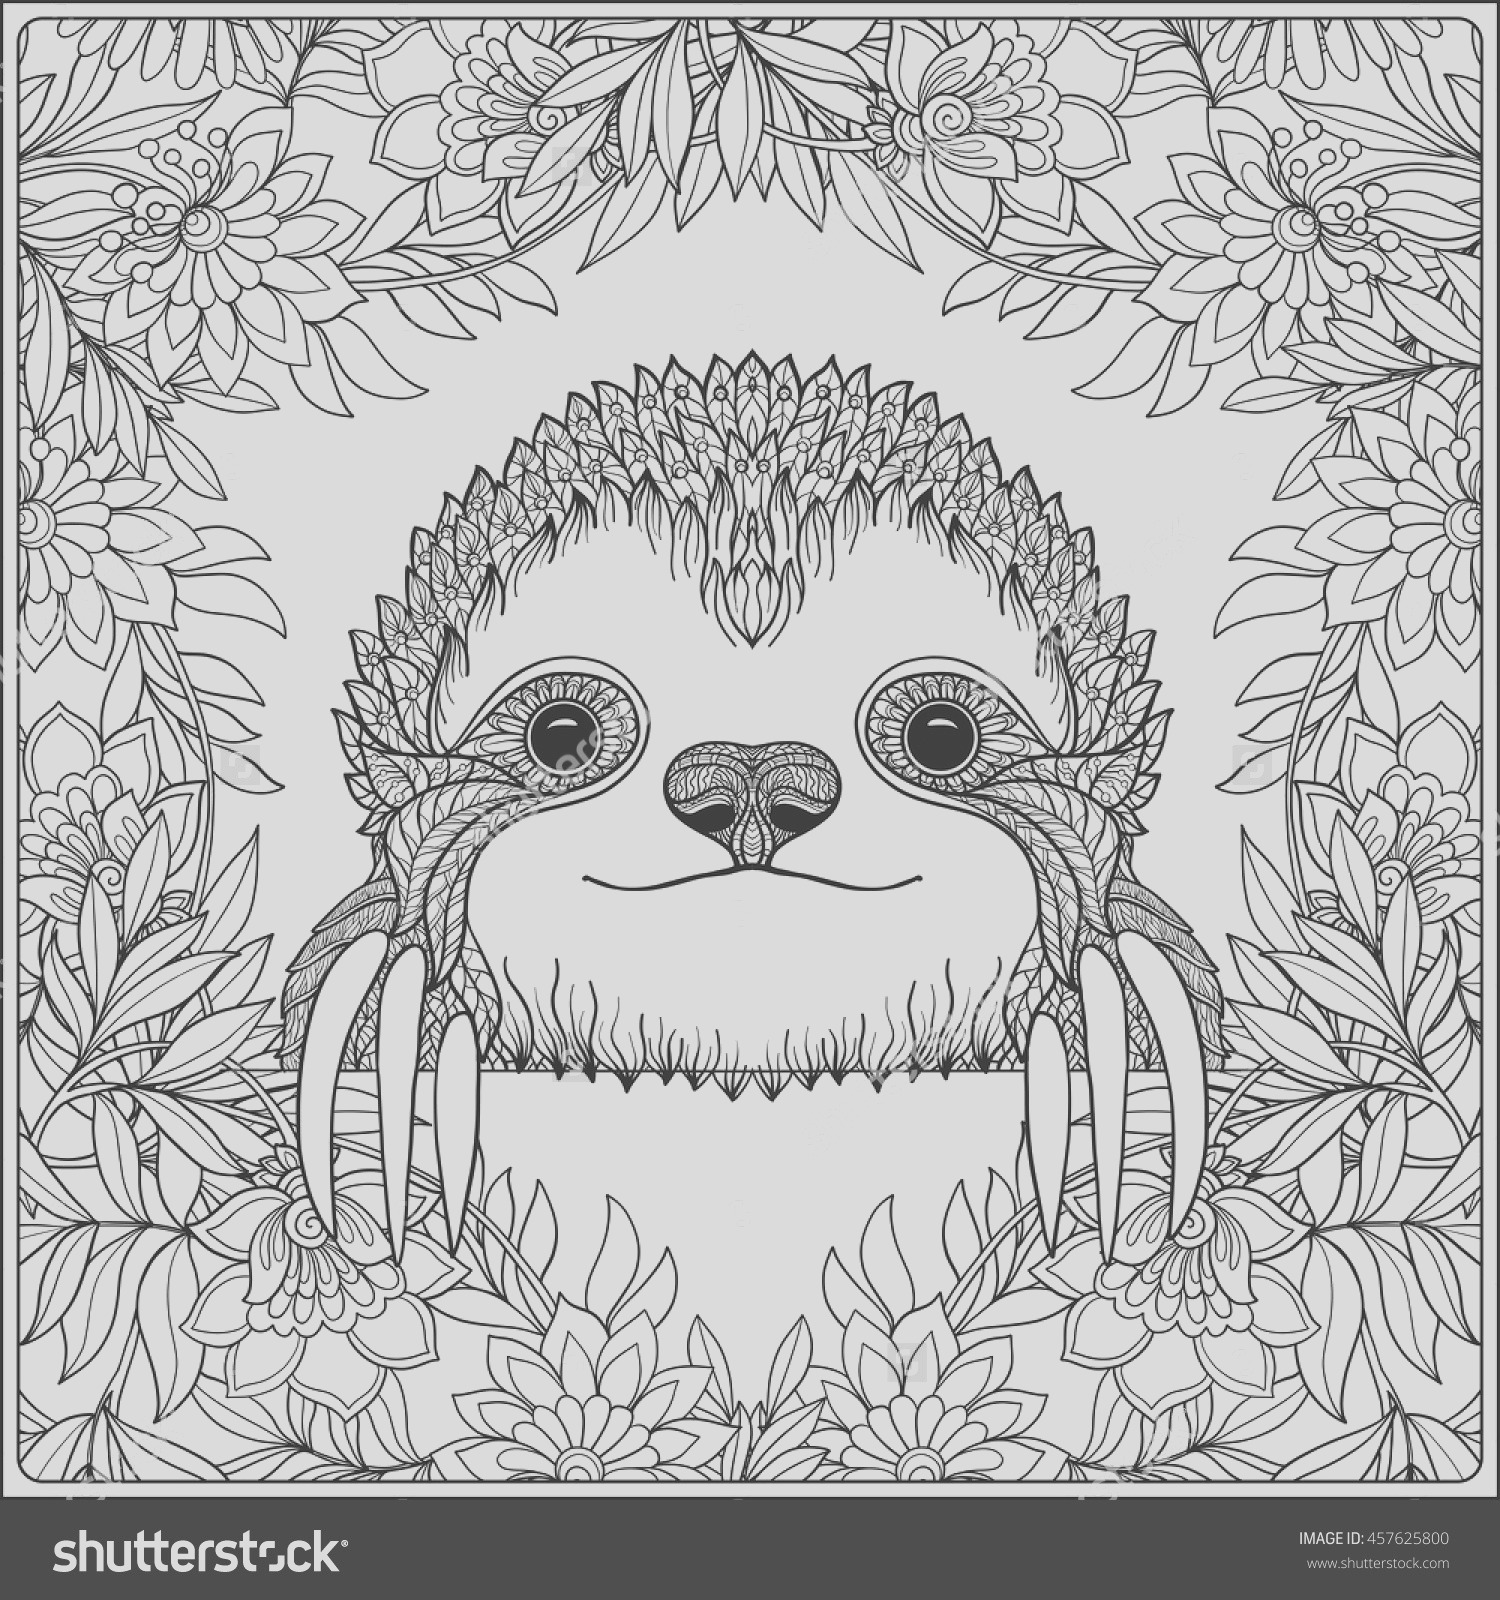 three toed sloth coloring pages